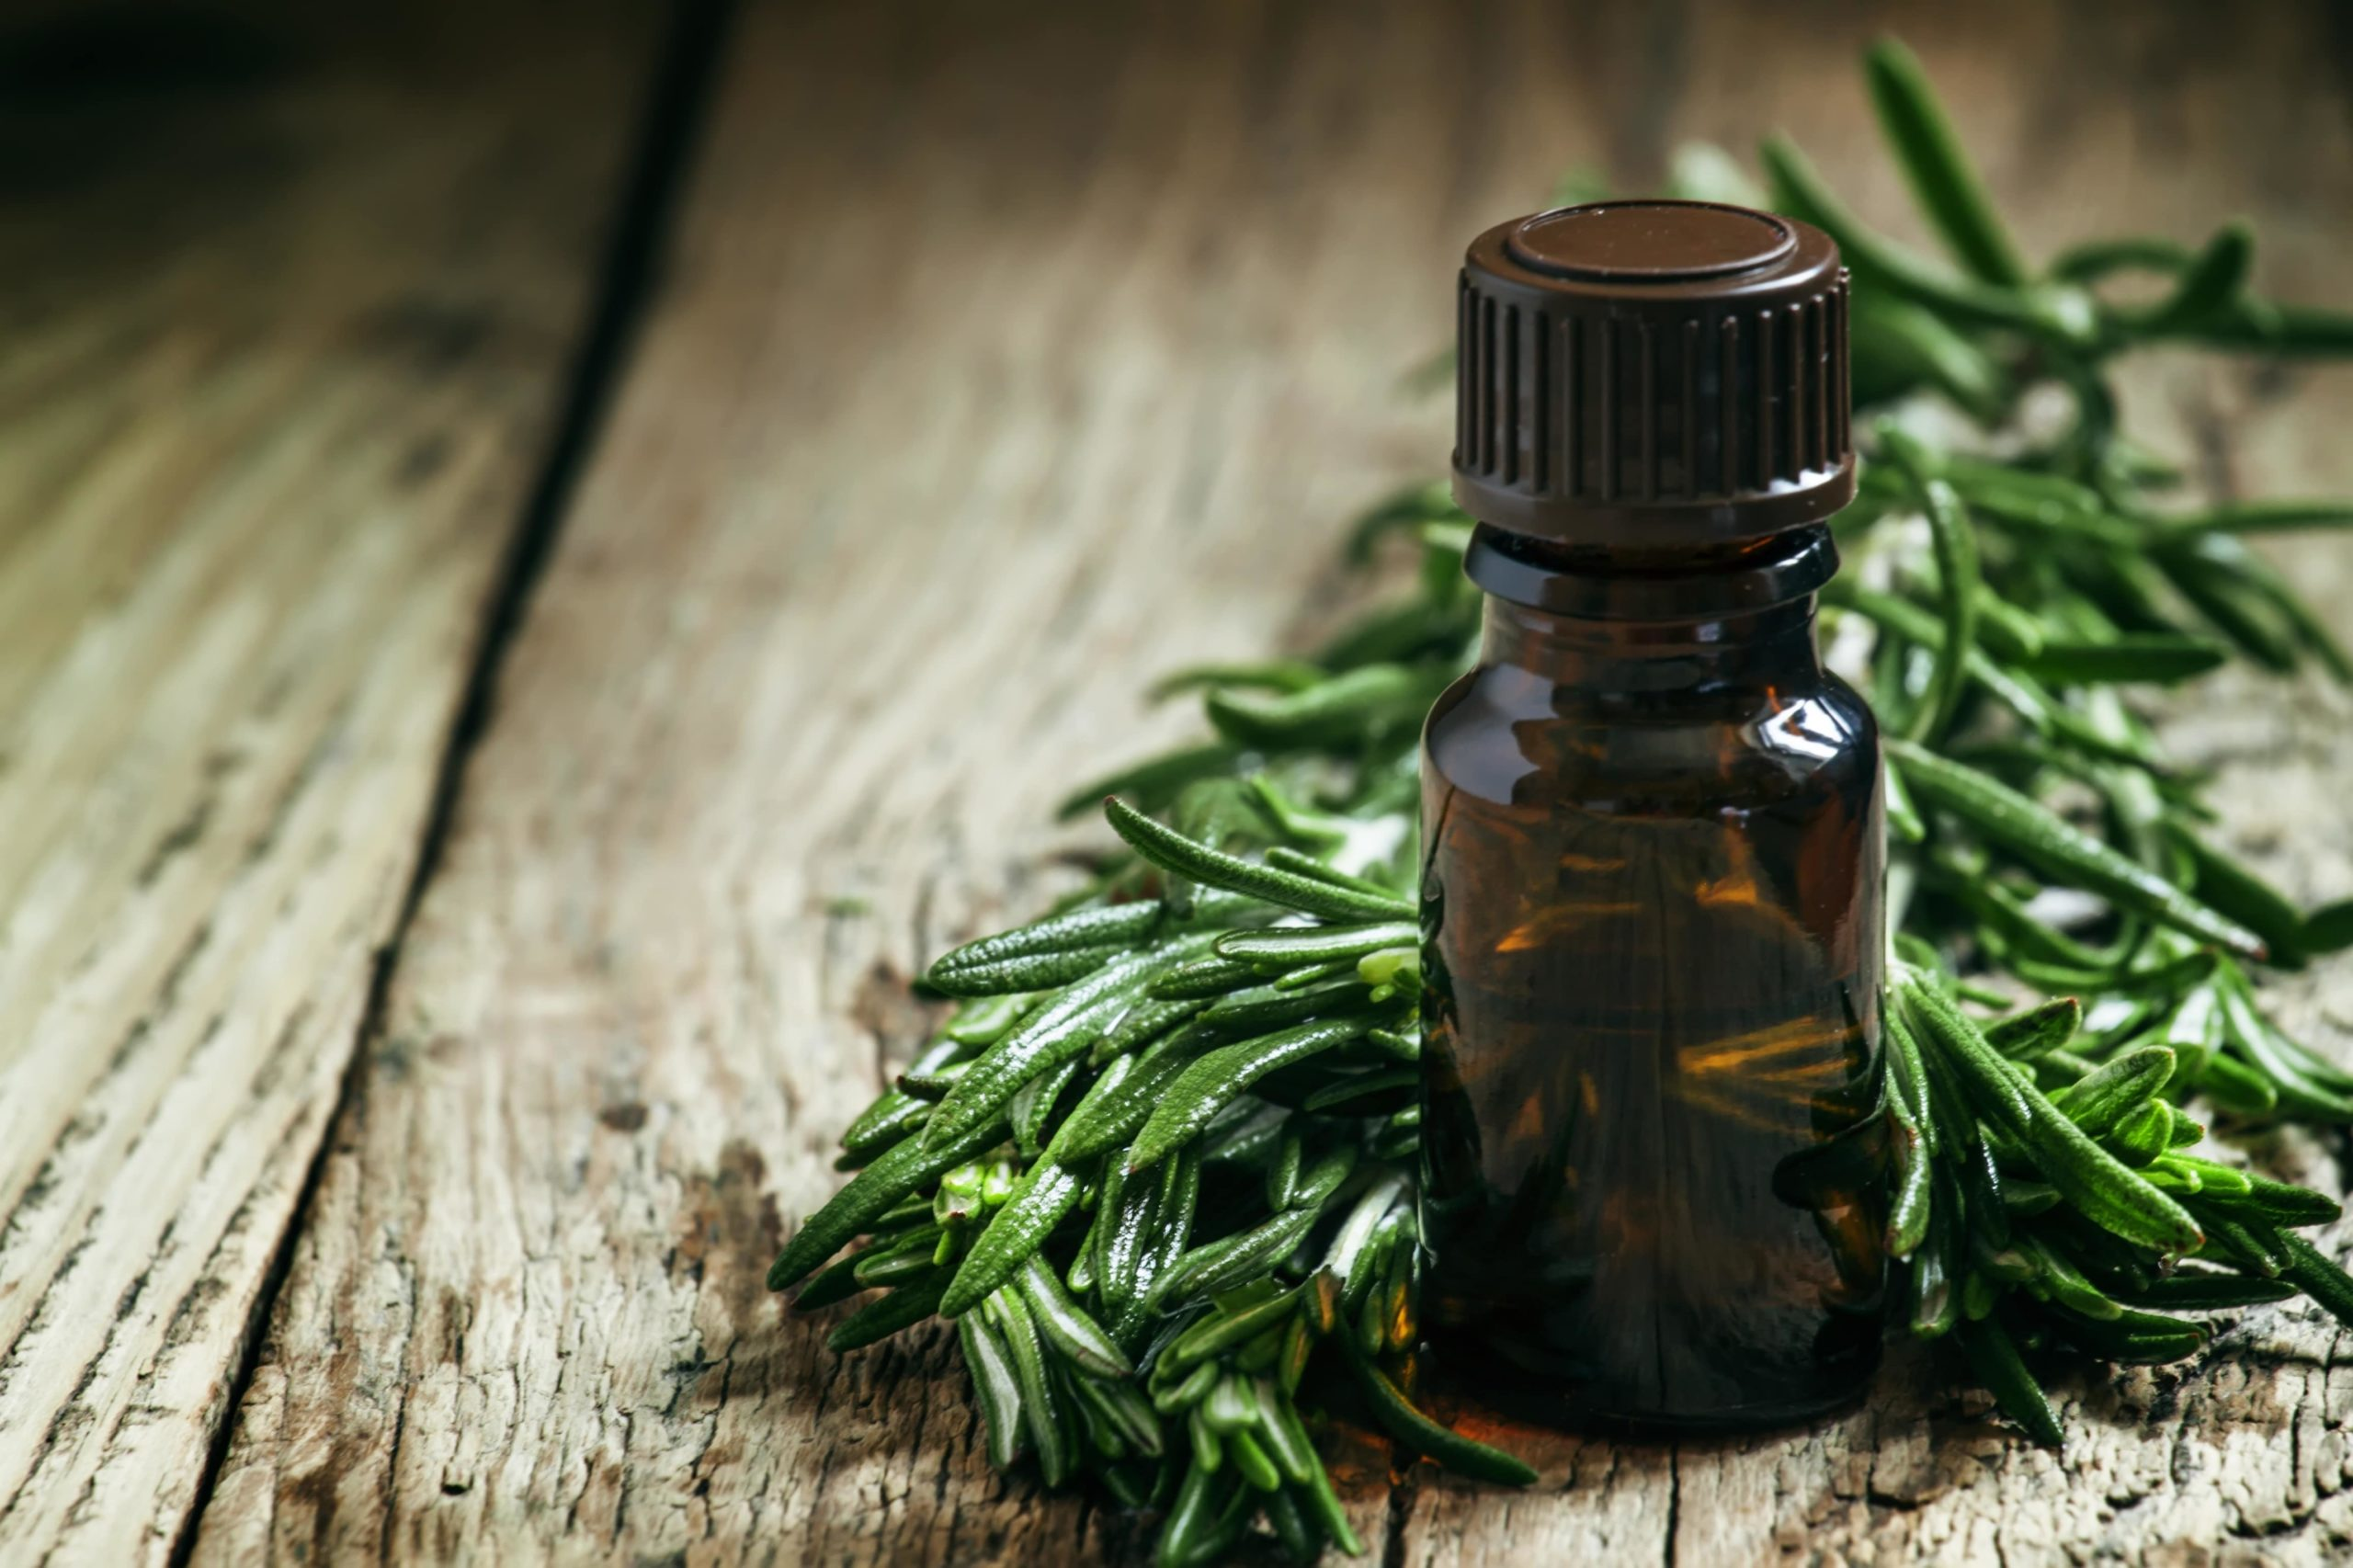 a small bottle bottle of tea tree oil, sat next to a handful of greenery.